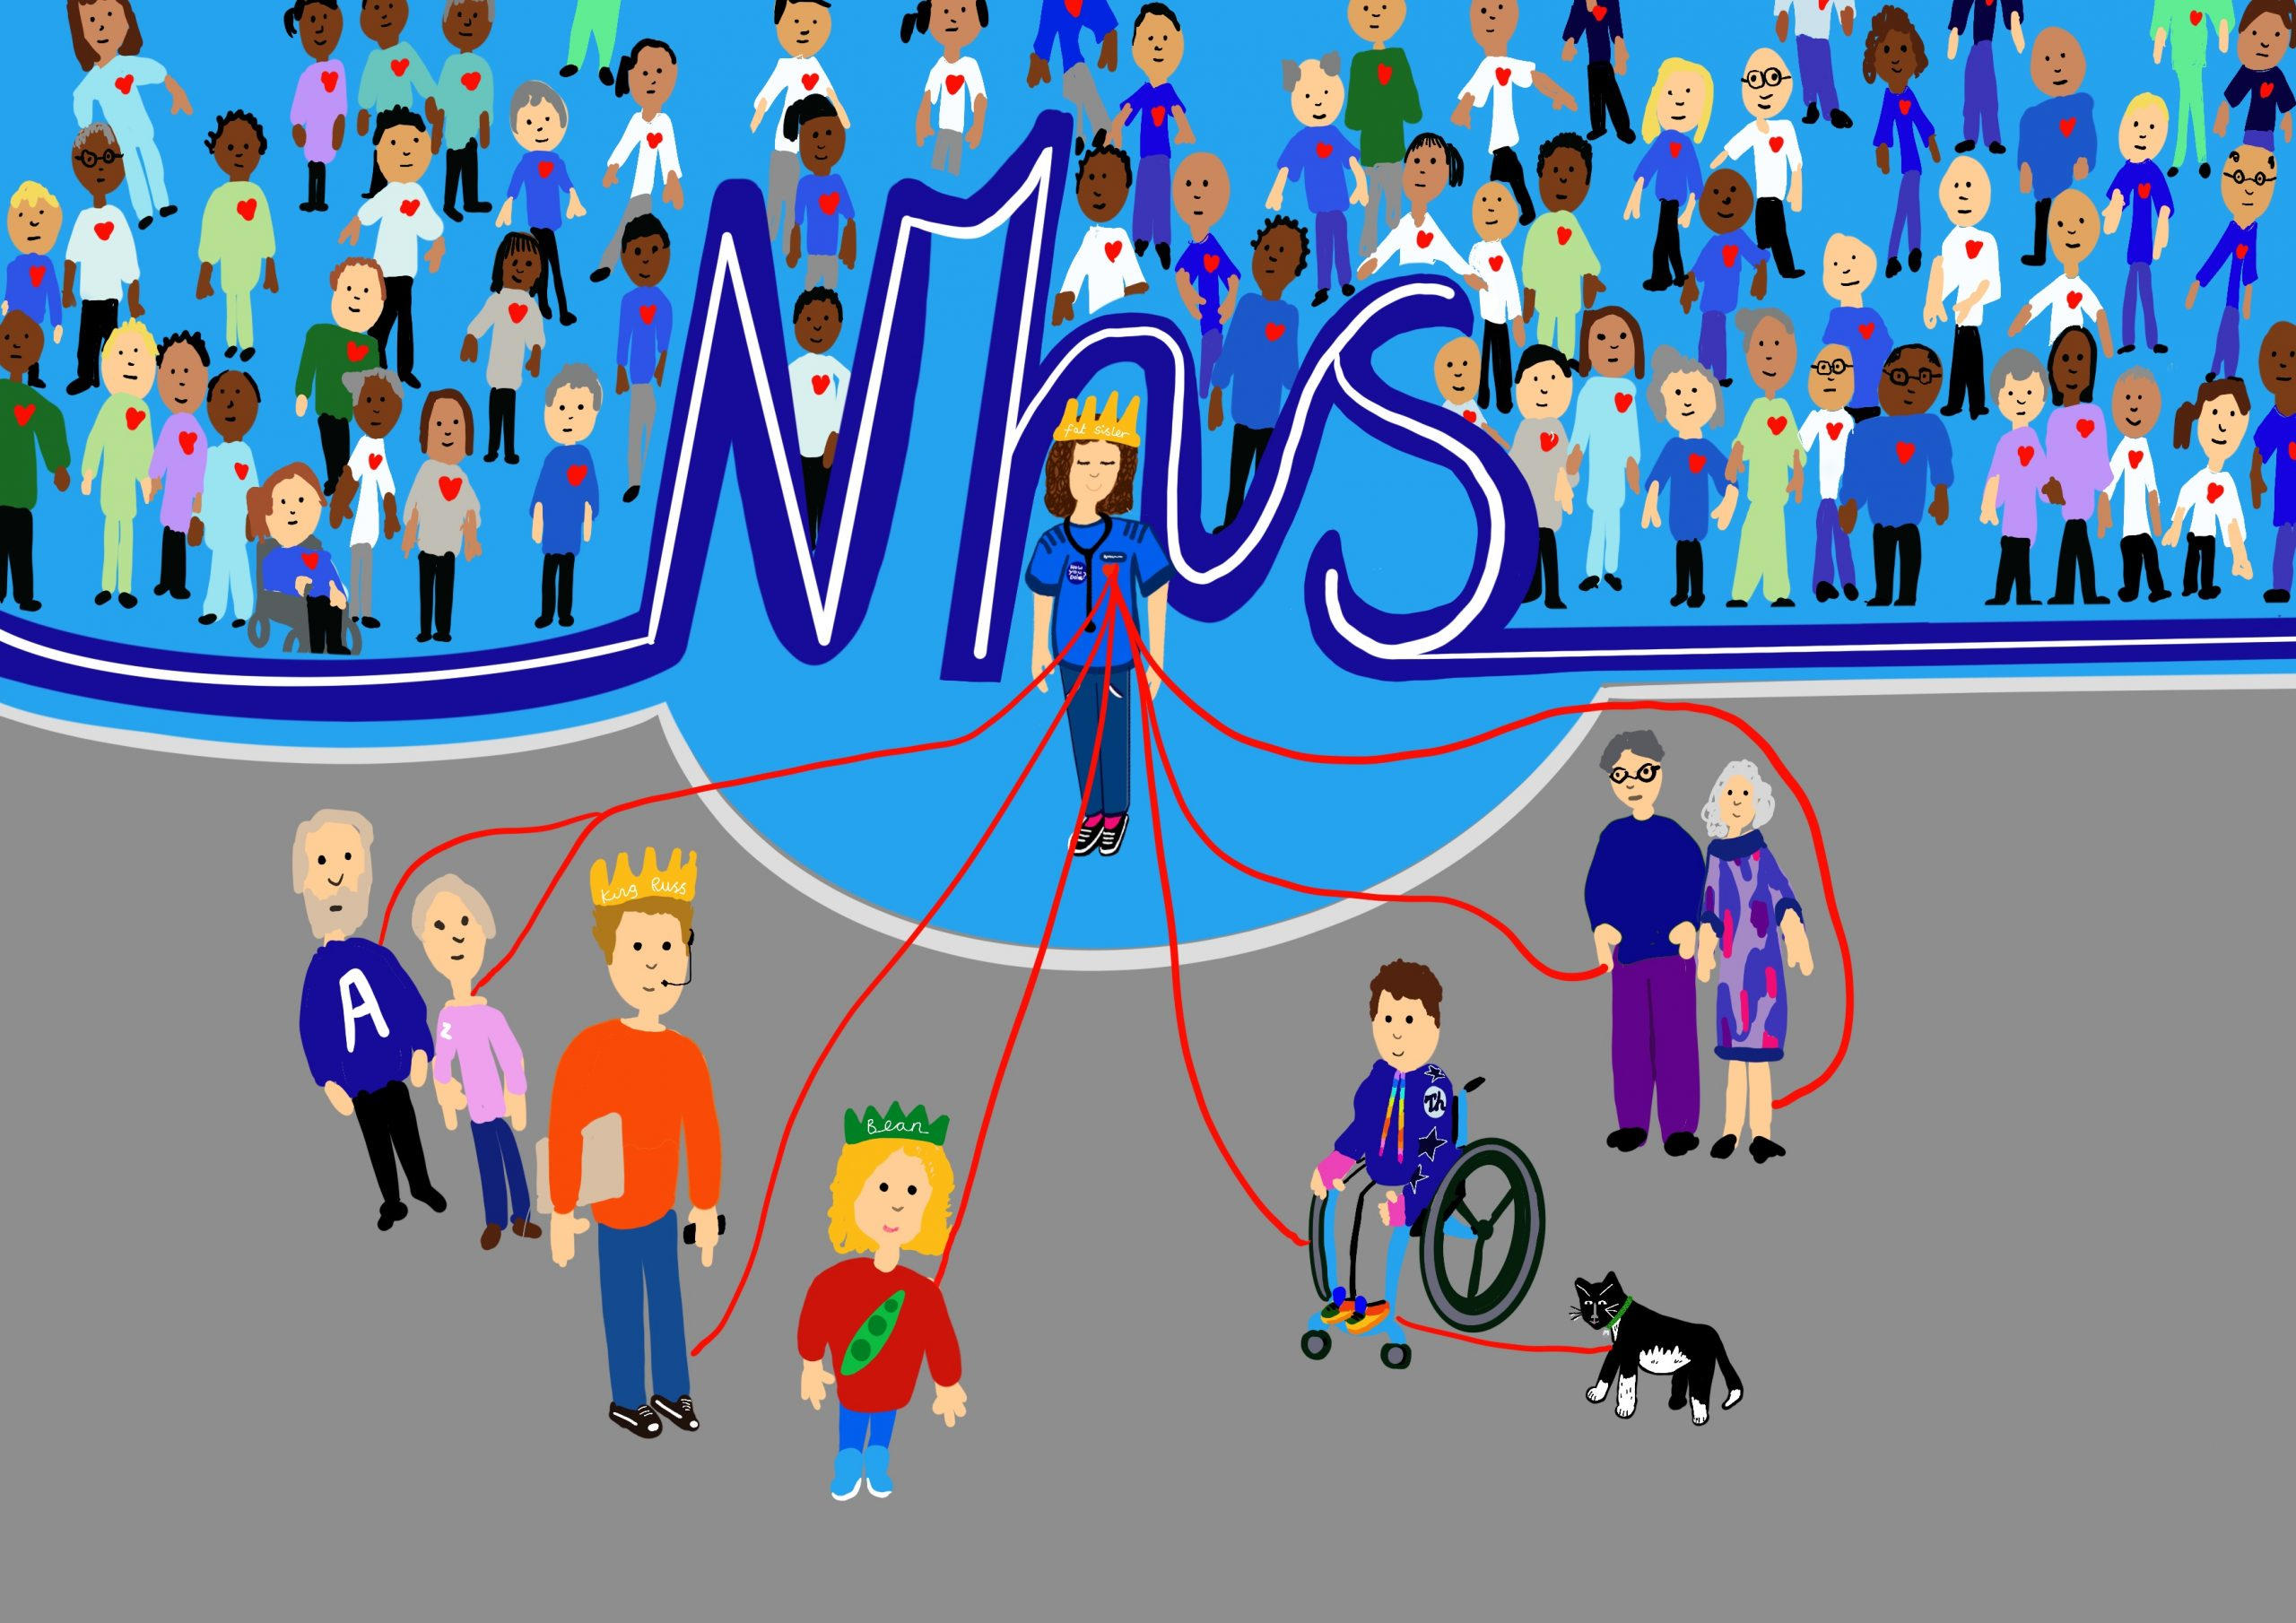 A digital painting of Fat Sister standing in front of large blue letters that spell out NHS. Red lines connect Fat sister to King Russell, Bean, Touretteshero, Monkey cat , King Russell's parents and Touretteshero and Fat Sisters' parents at the foreground of the image. Standing behind Fat Sister in the background of the image are health professionals of all backgrounds and ages.